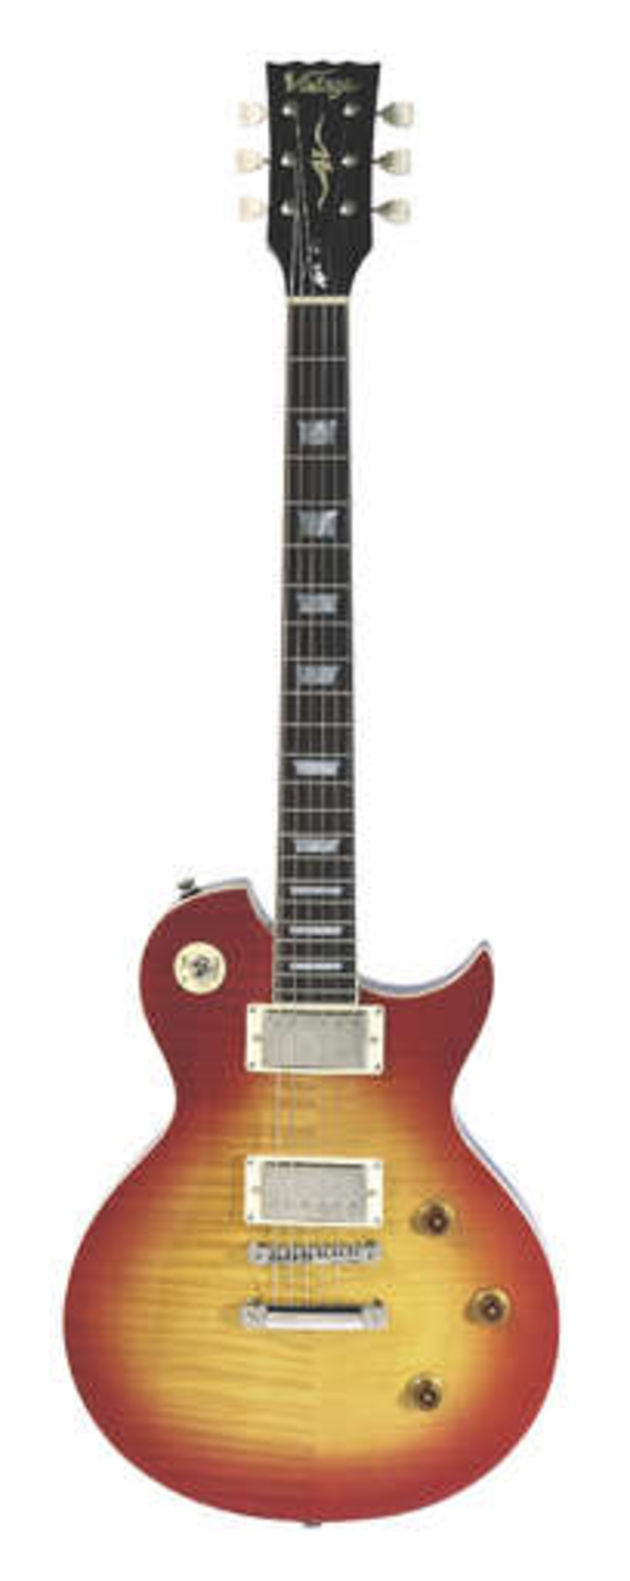 The Advance AV1: an original variation on the Les Paul design!